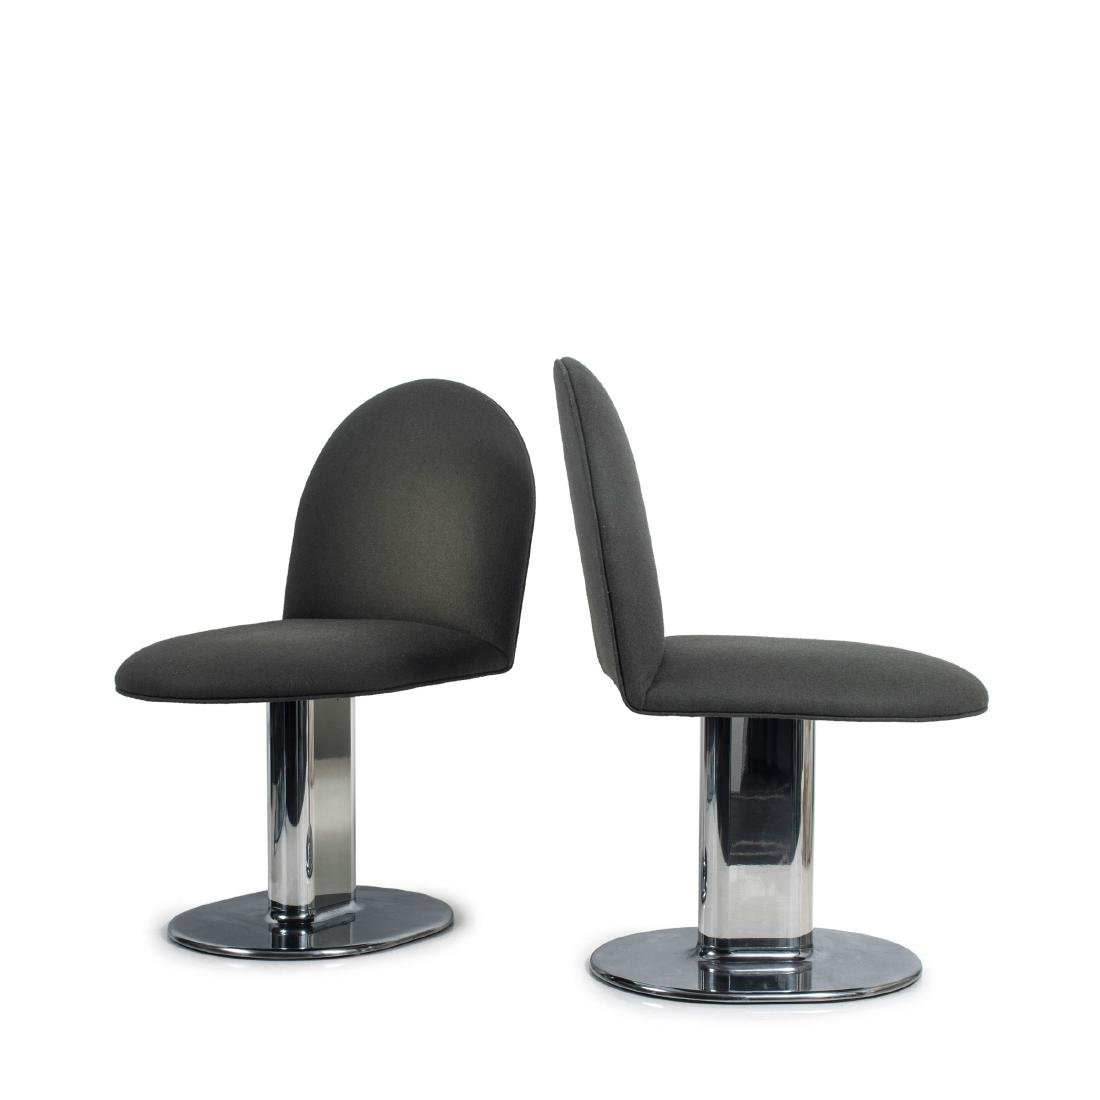 Two 'Harlow' chairs, 1971